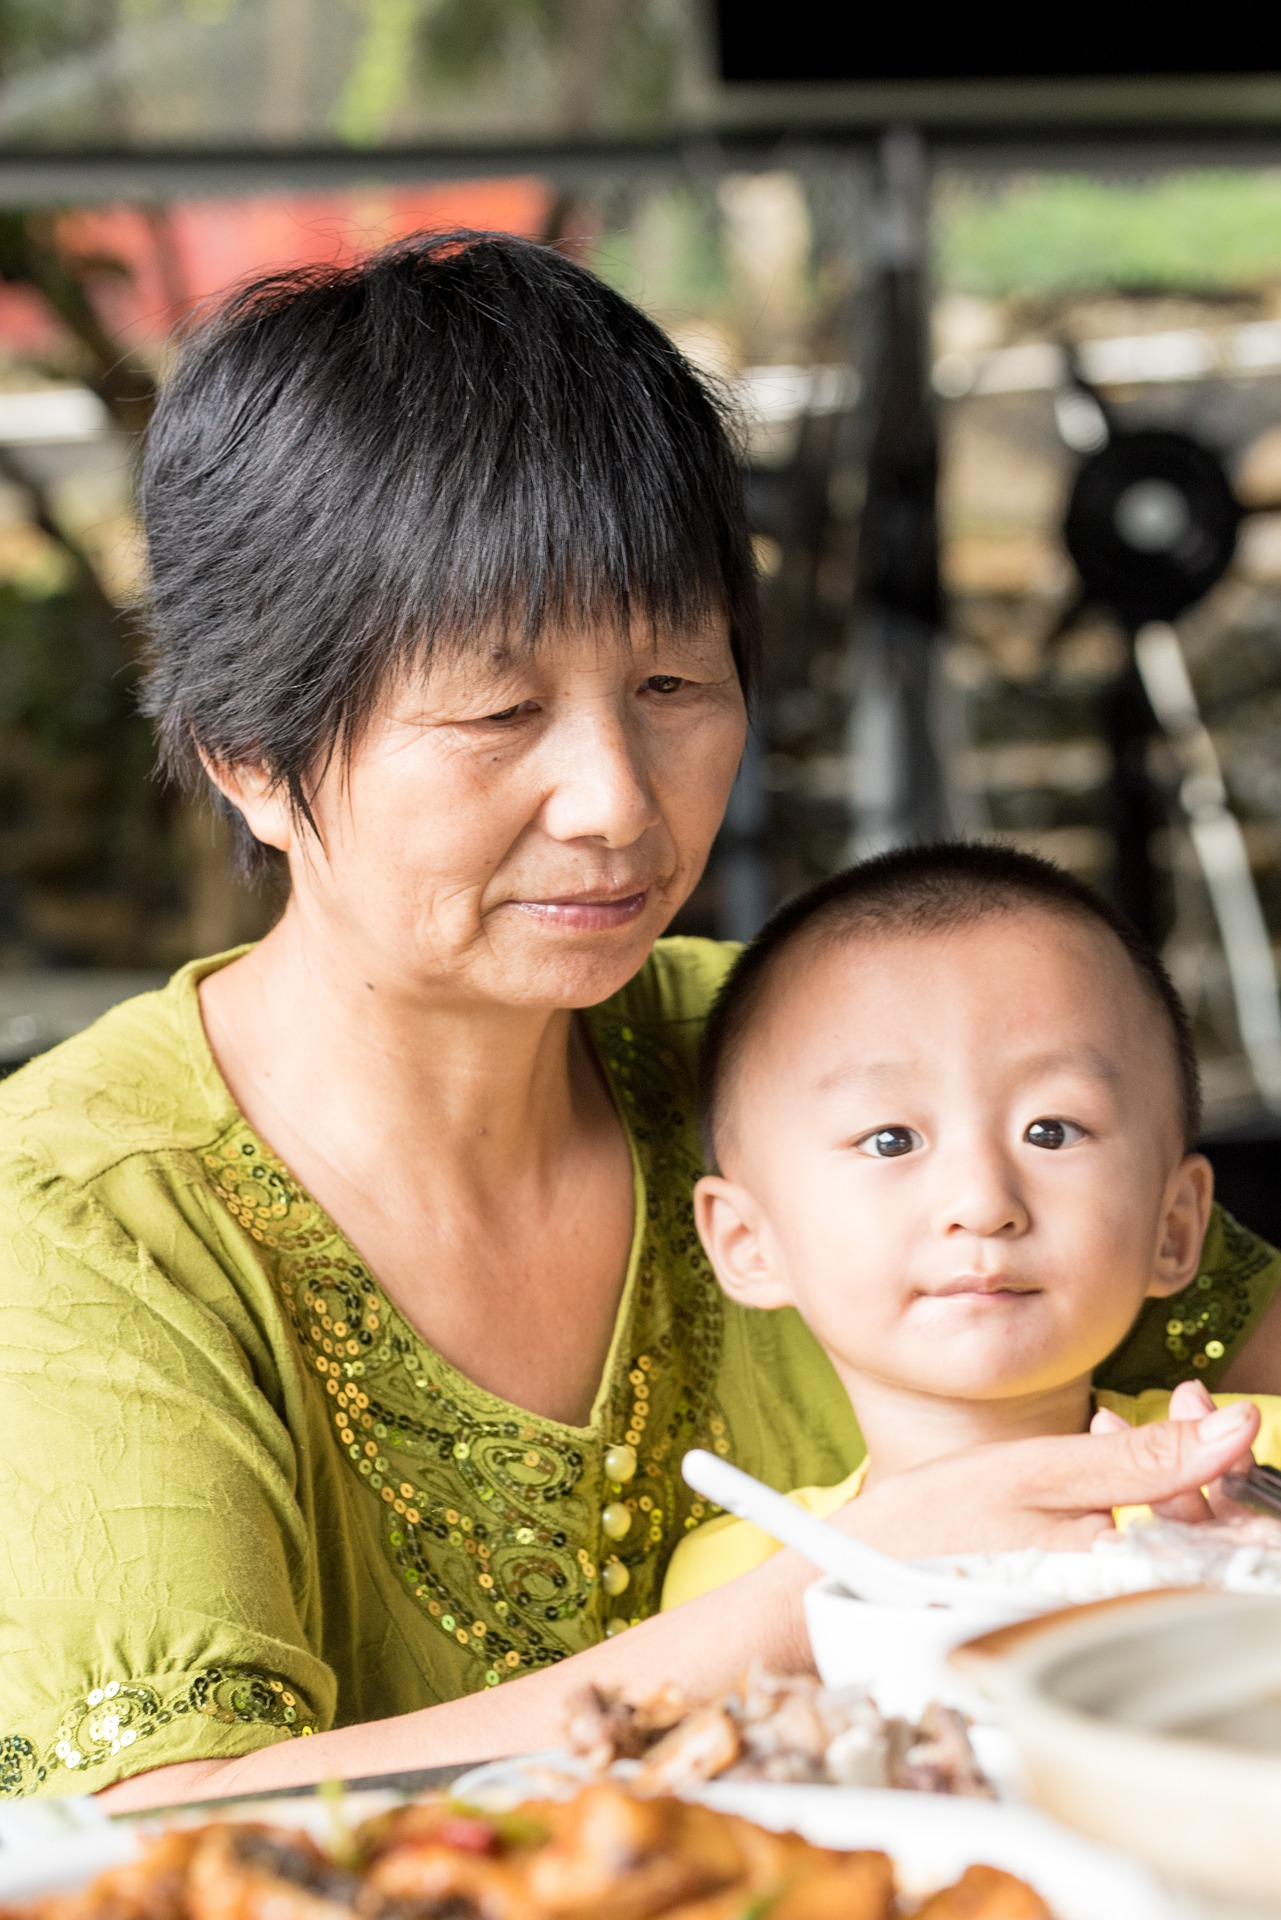 Asian grandmother with child on her lap